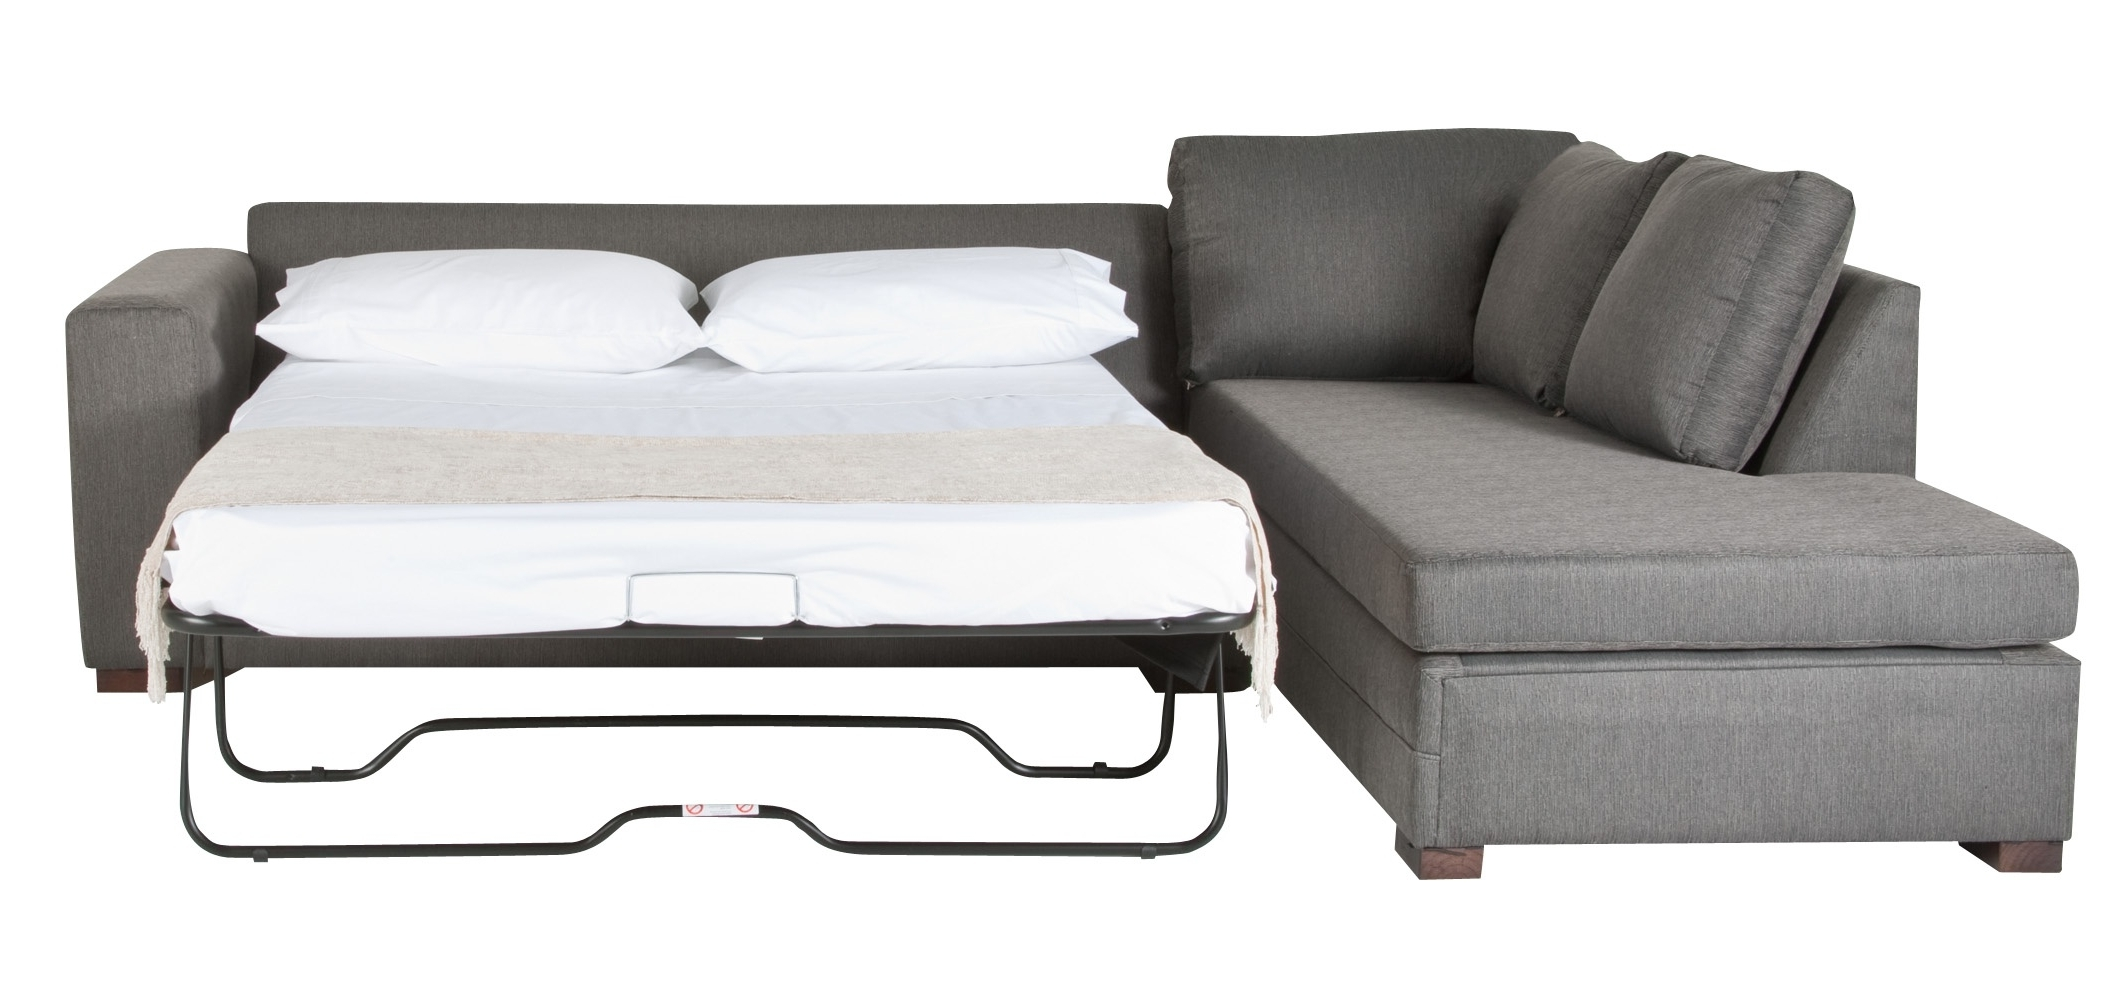 Sectional Sofas With Queen Size Sleeper Inside Favorite Sectional Pull Out Sleeper Sofa – Ansugallery (View 4 of 20)